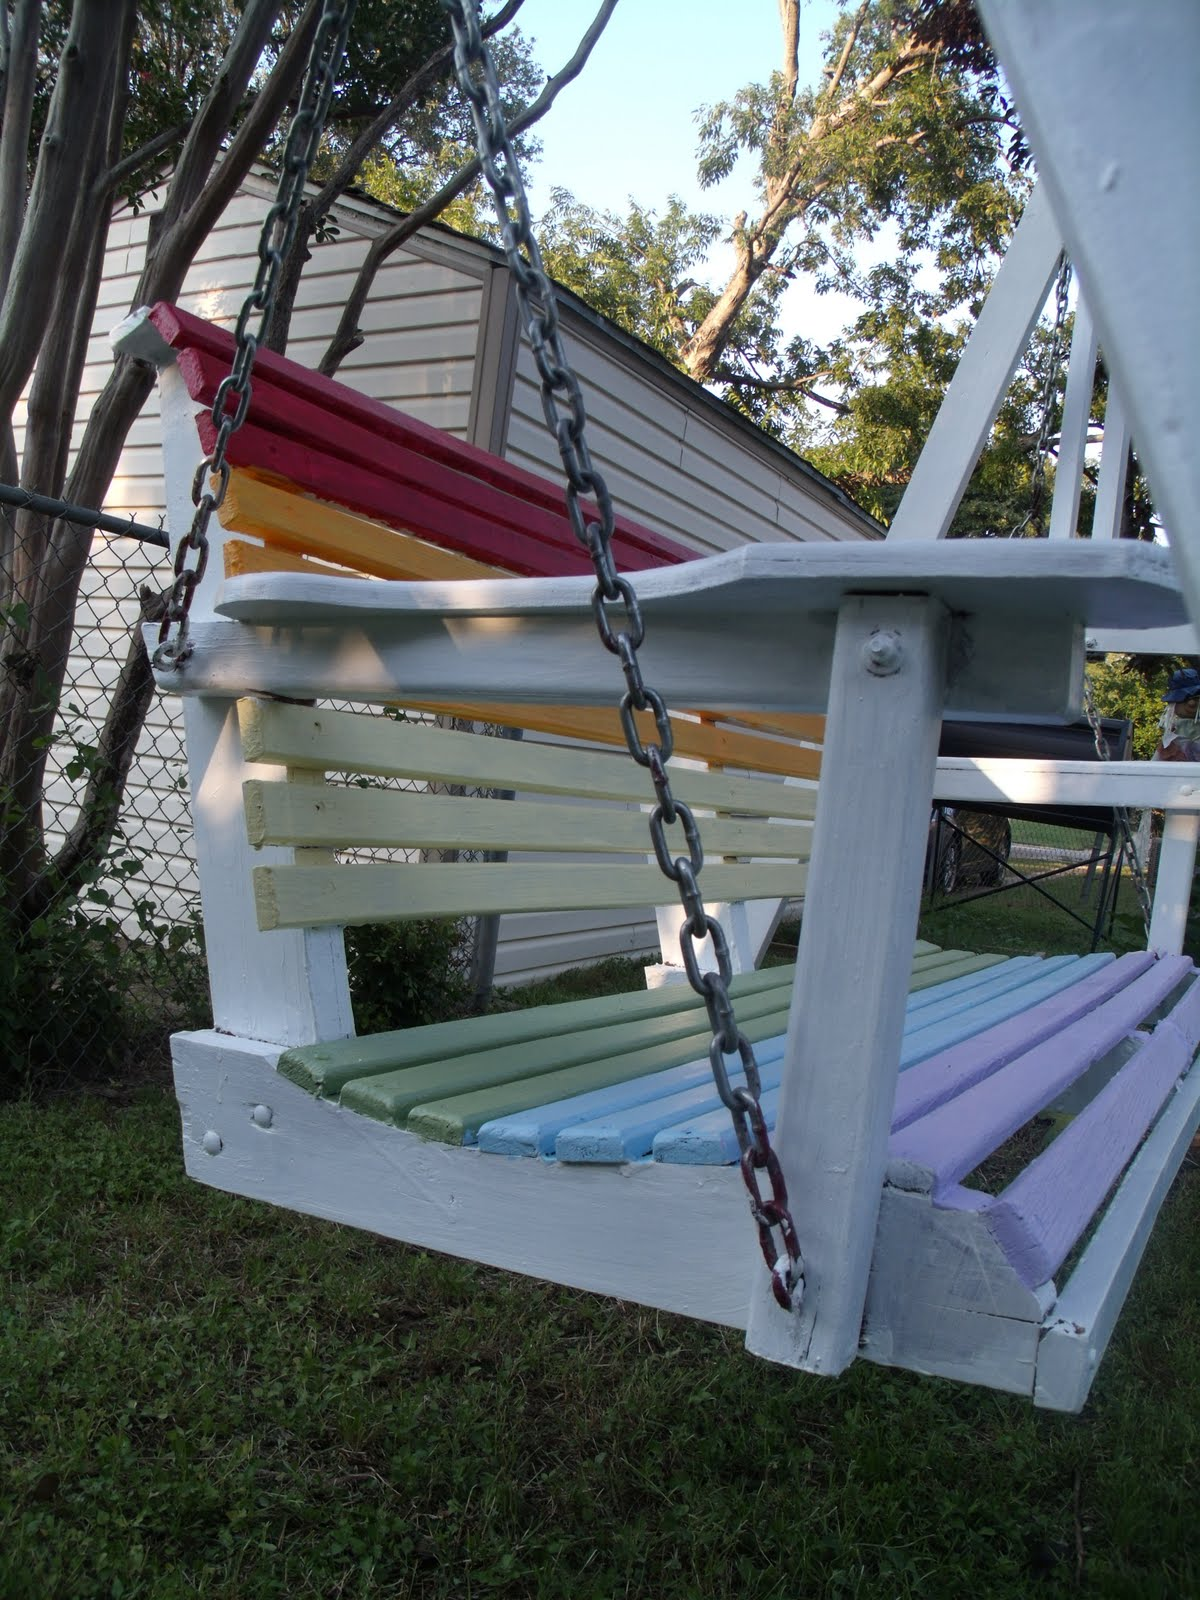 Backyard makeover on a budget - One Mama's Daily Drama on Patio Makeovers On A Budget id=12955